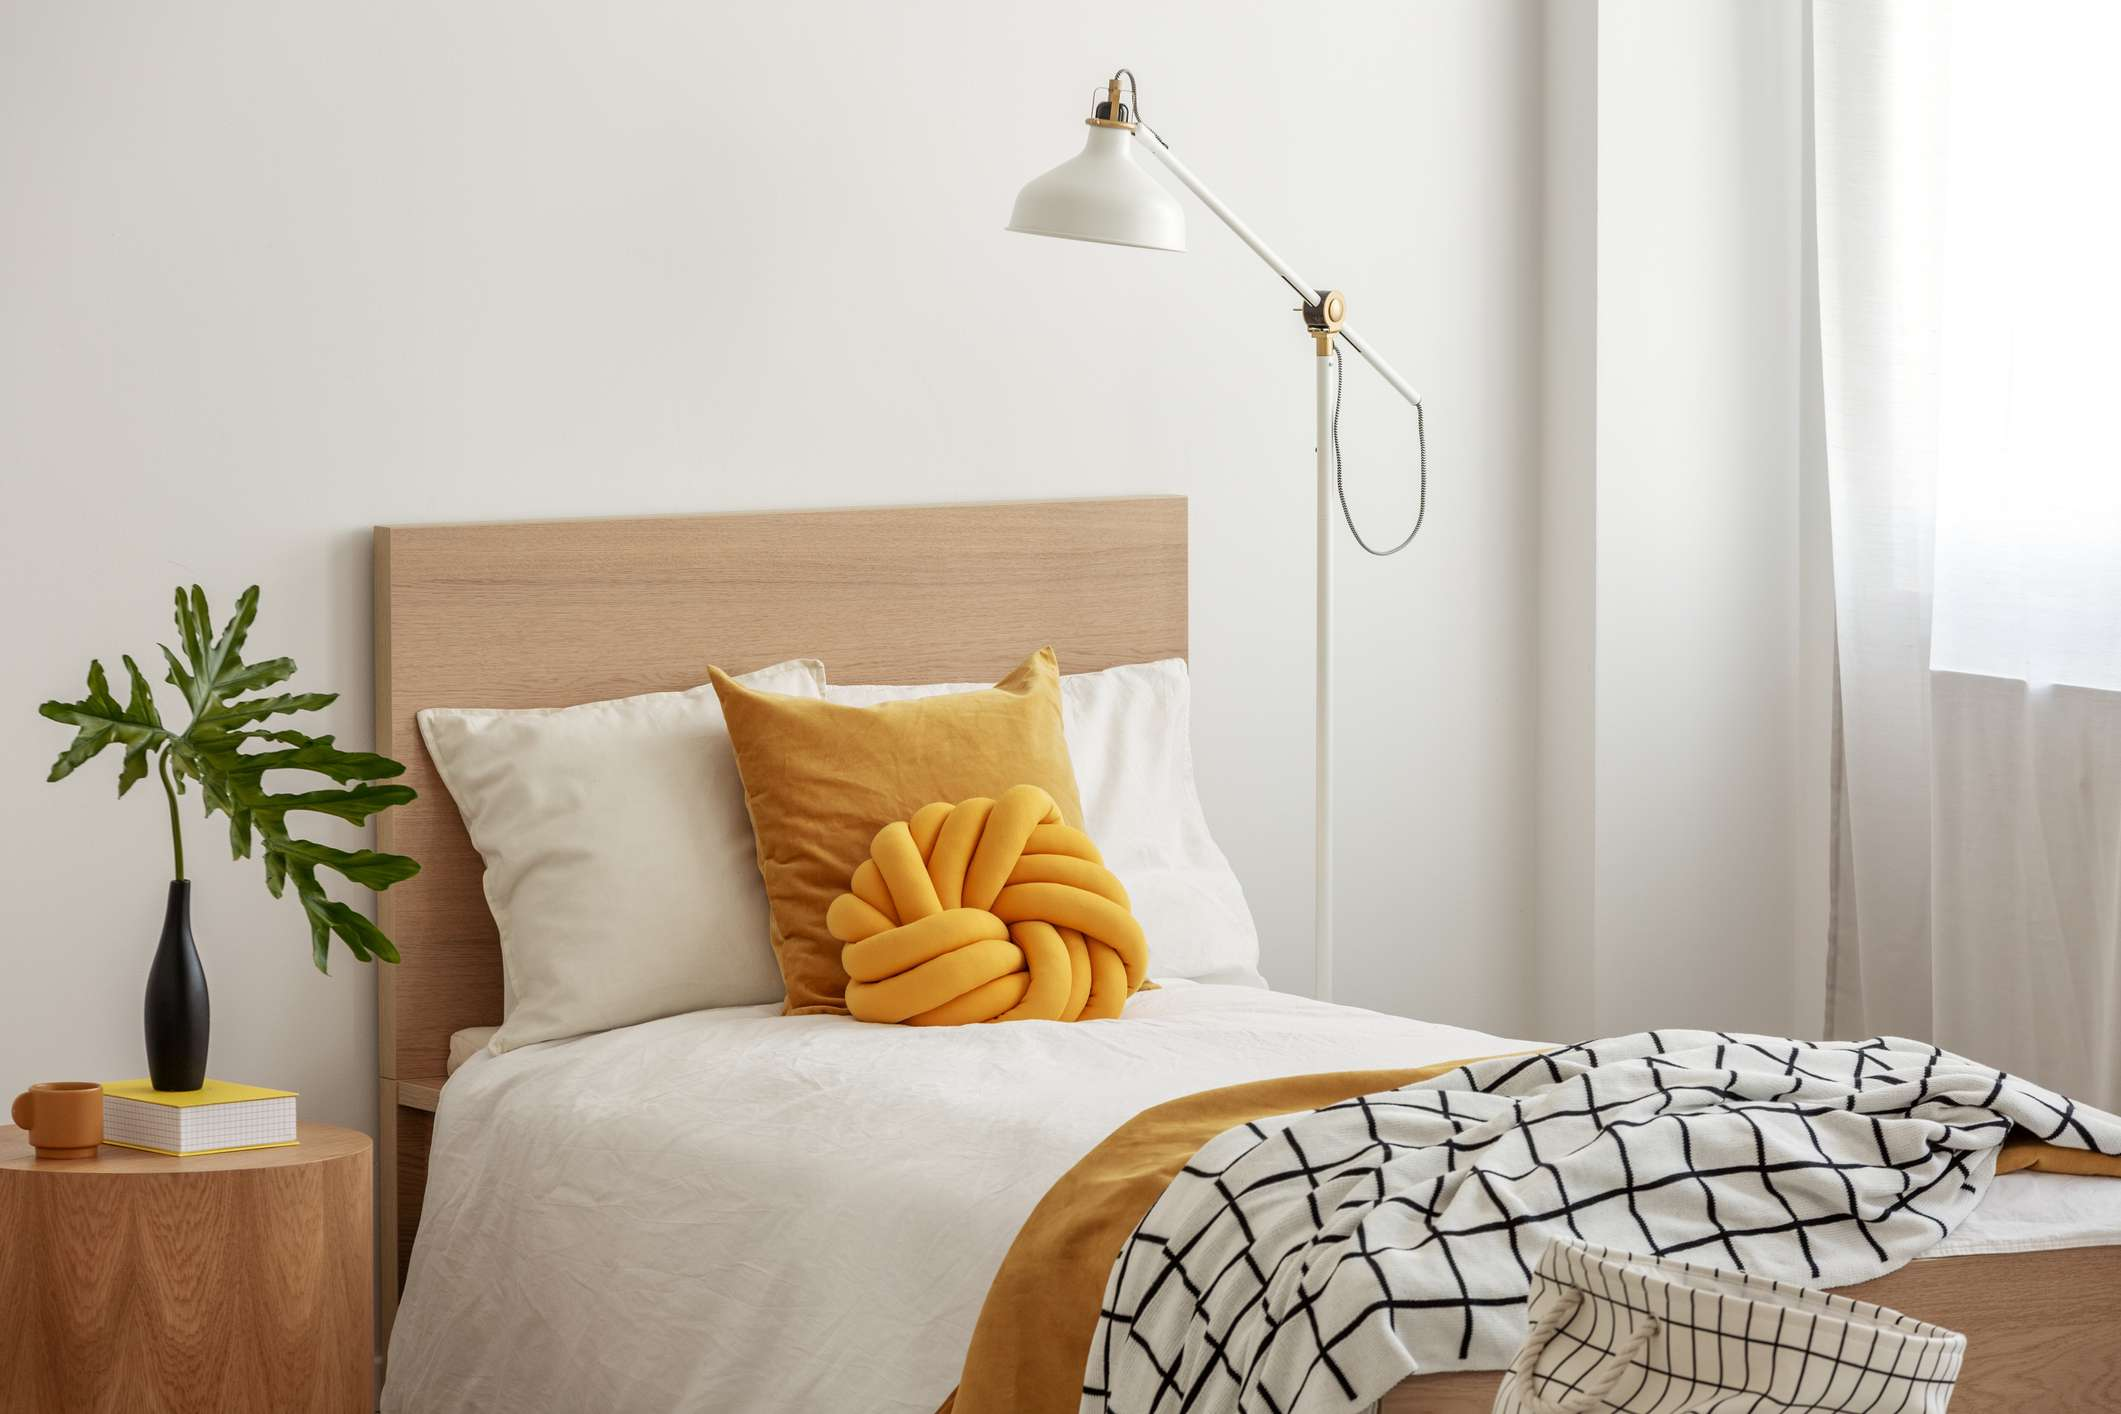 Yellow and white bedding